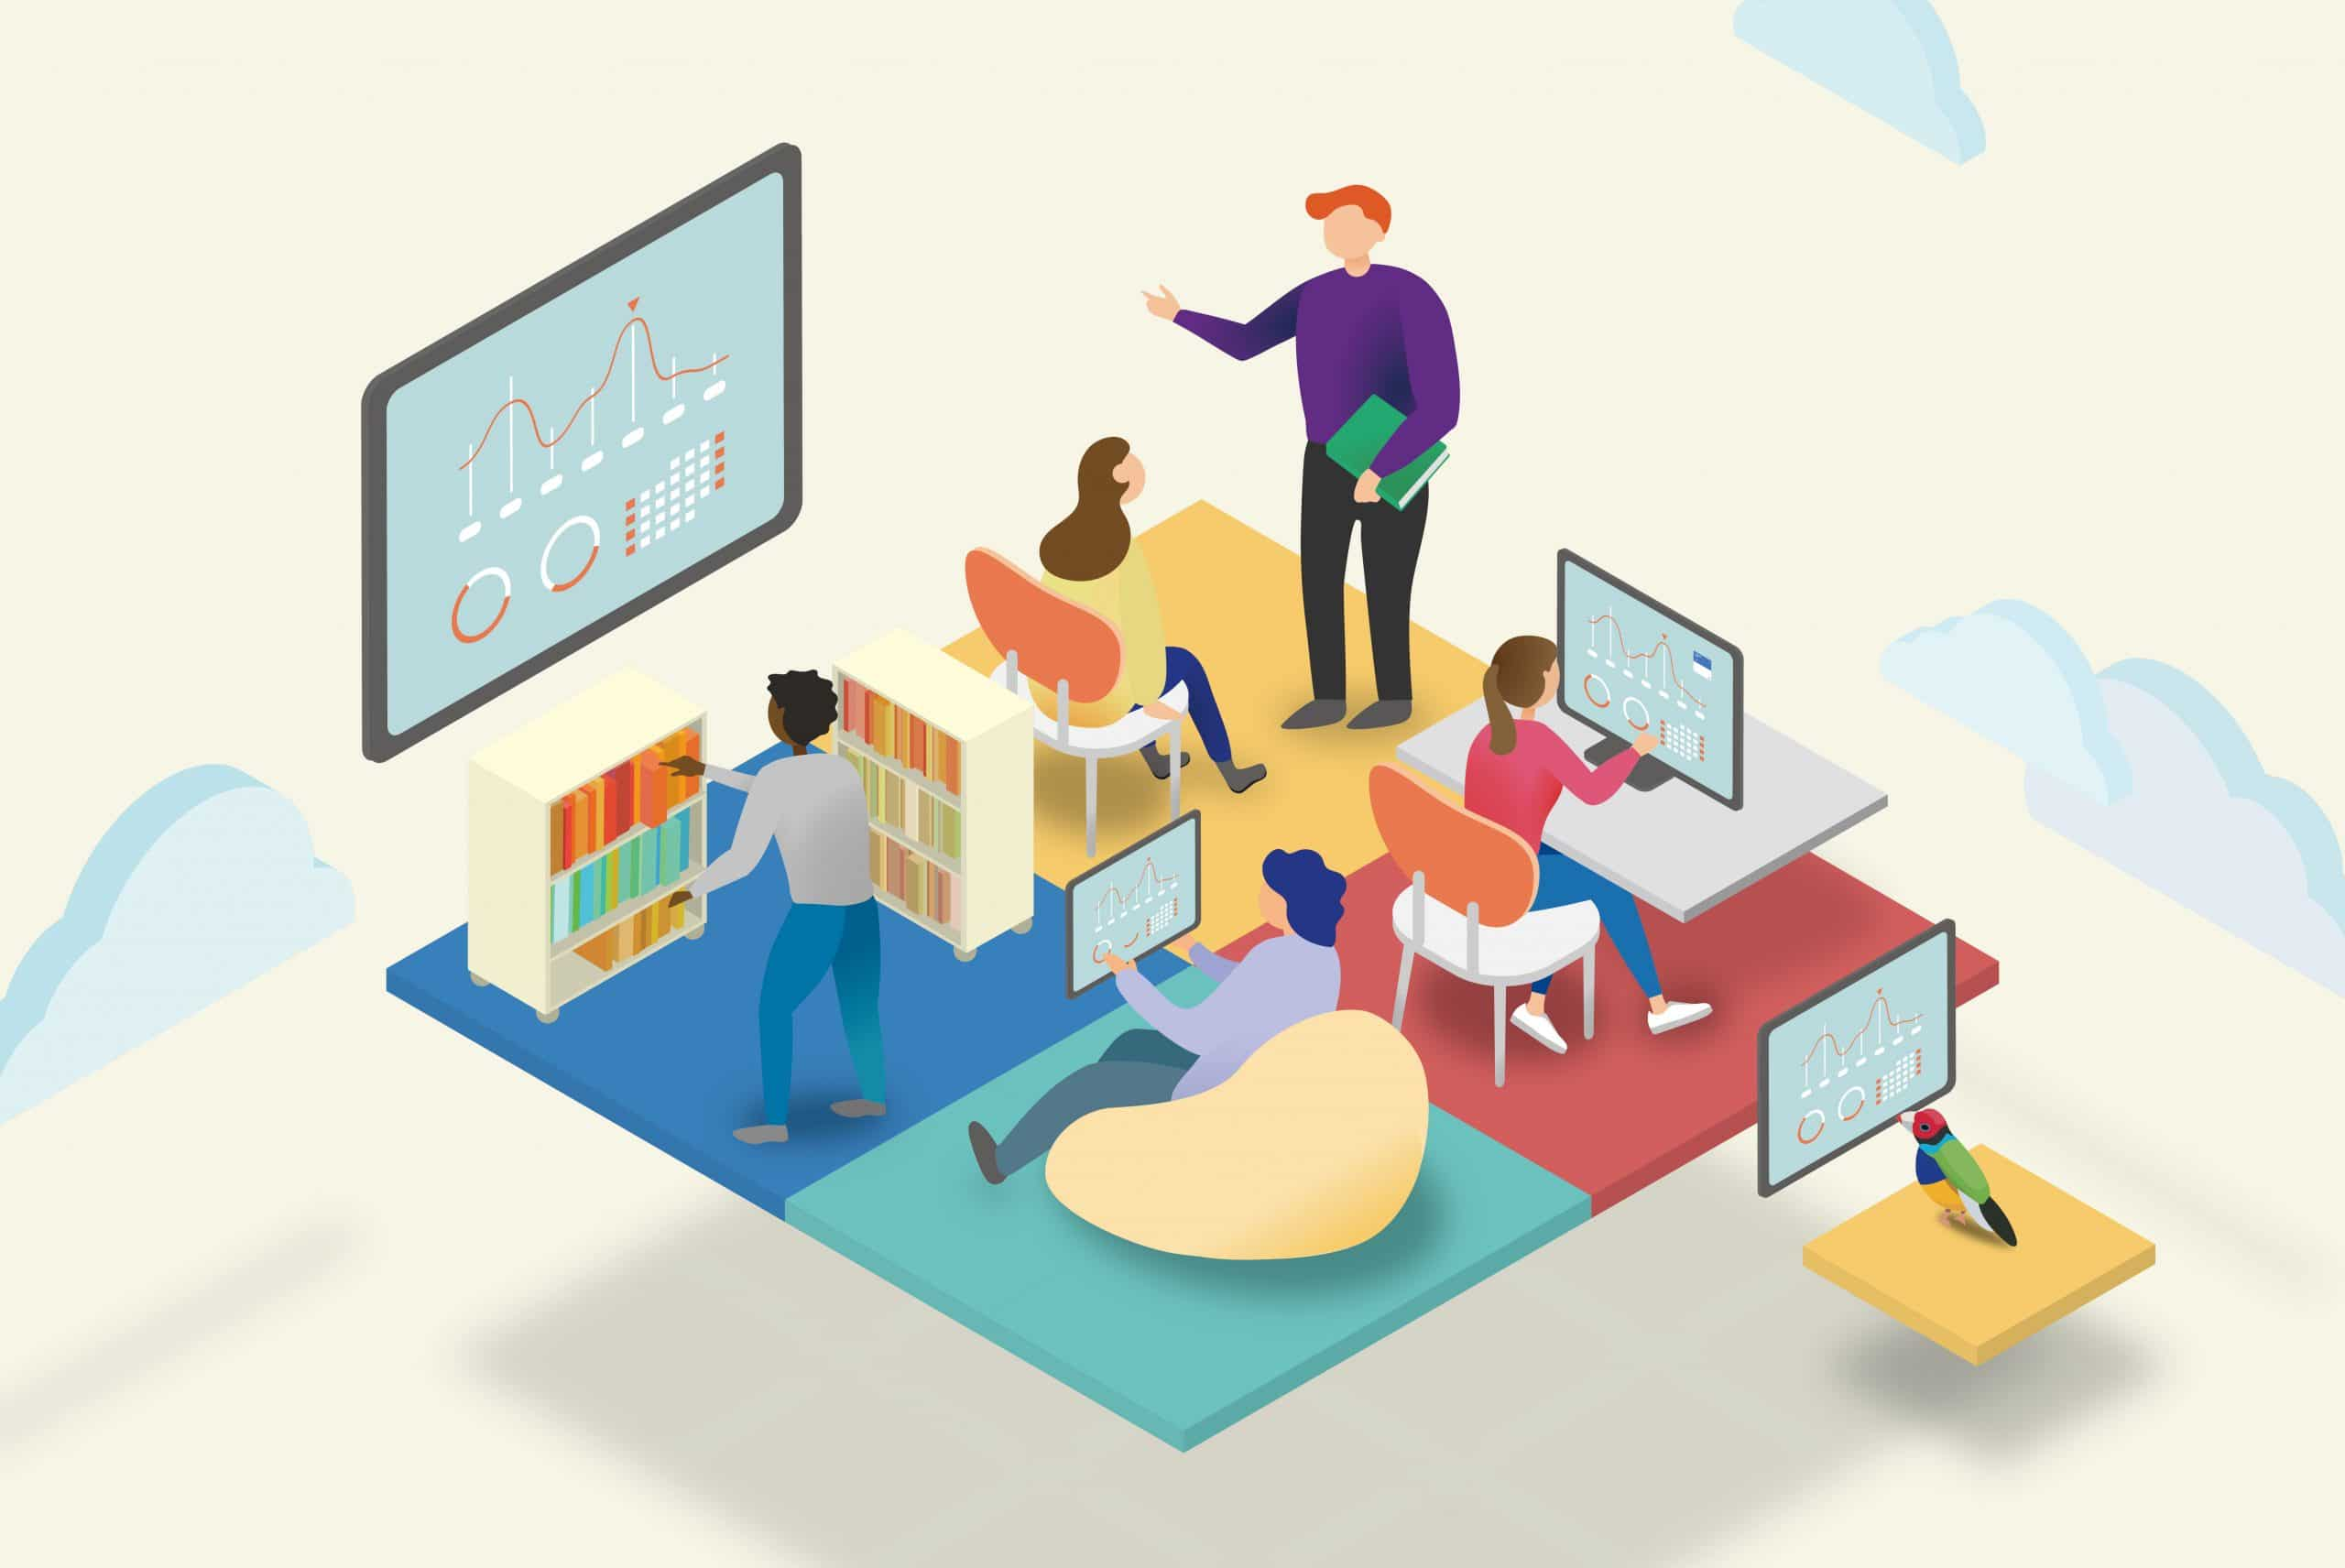 Next Generation Classroom Design Ideas And Learning Benefits Myviewboard Blog Developing future ready classroom with